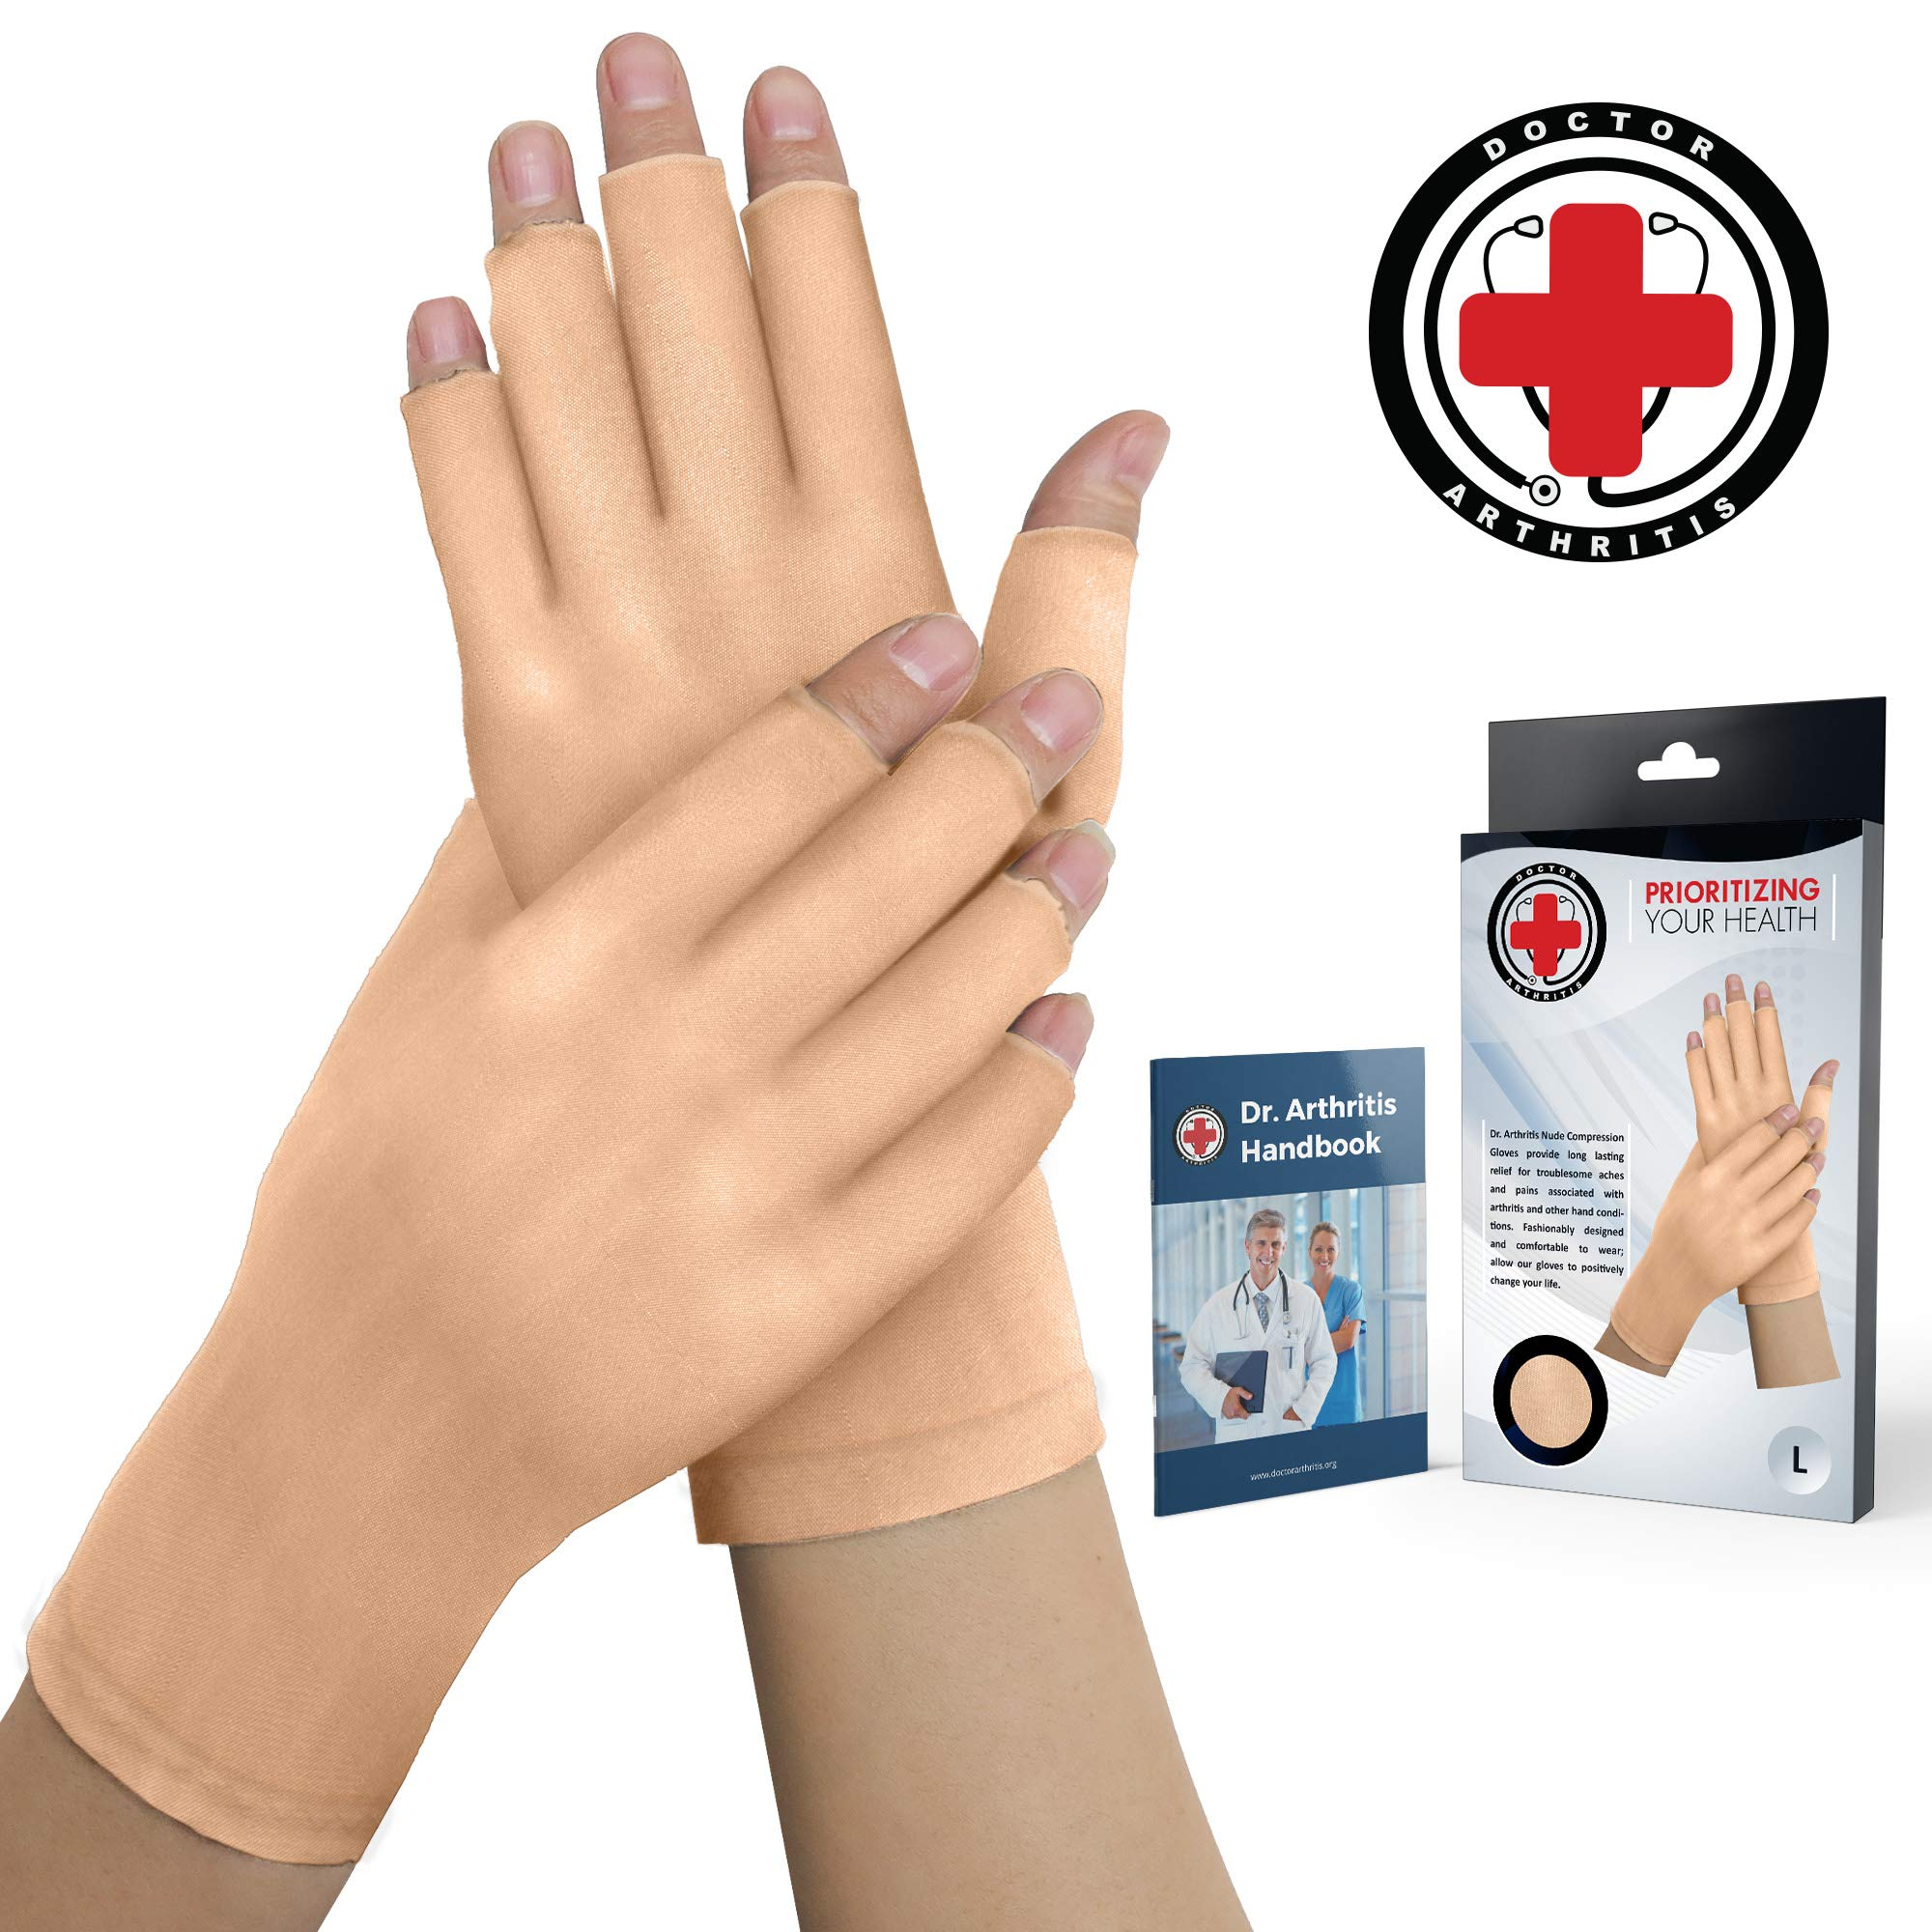 Doctor Developed Nude Arthritis Gloves/Skin Gloves and Doctor Written Handbook - Soft with Mild Compression, for Arthritis, Raynauds Disease & Carpal Tunnel (Open-fingertips, Medium) by Dr. Arthritis